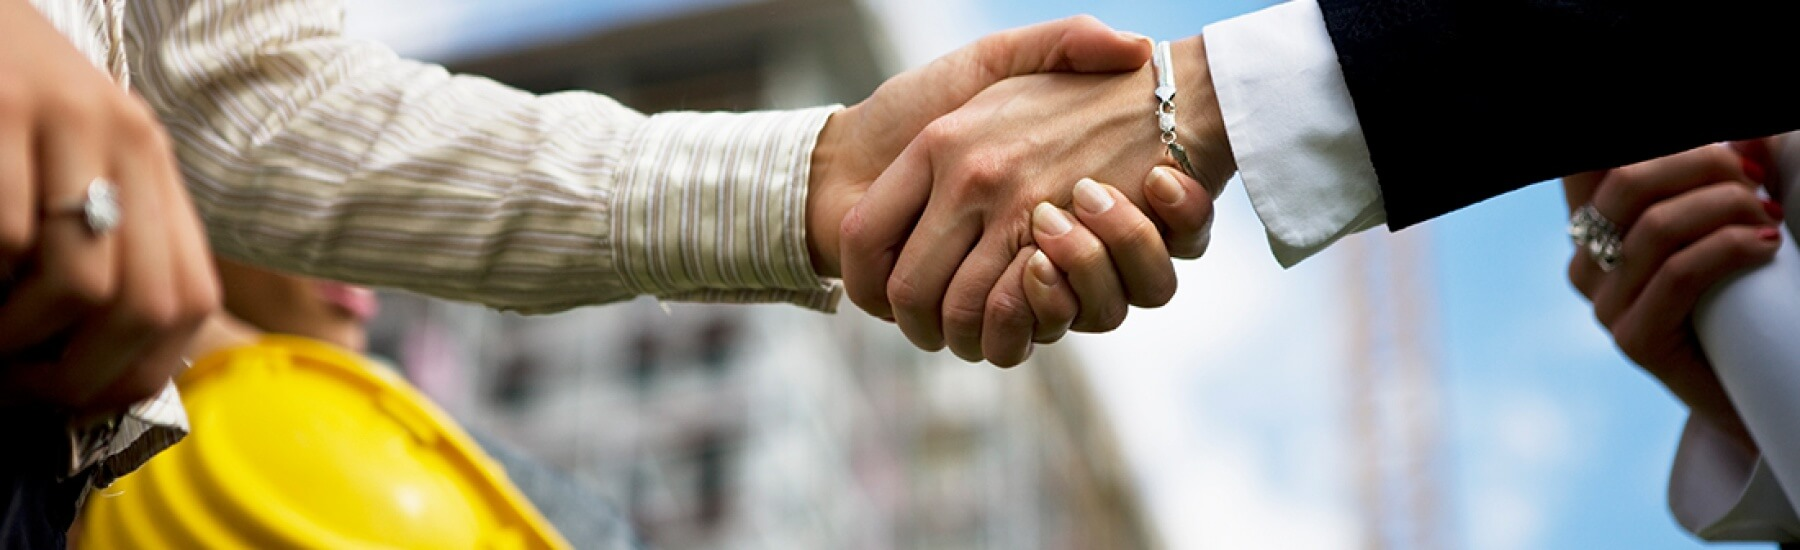 Stock photo - two people shaking hands